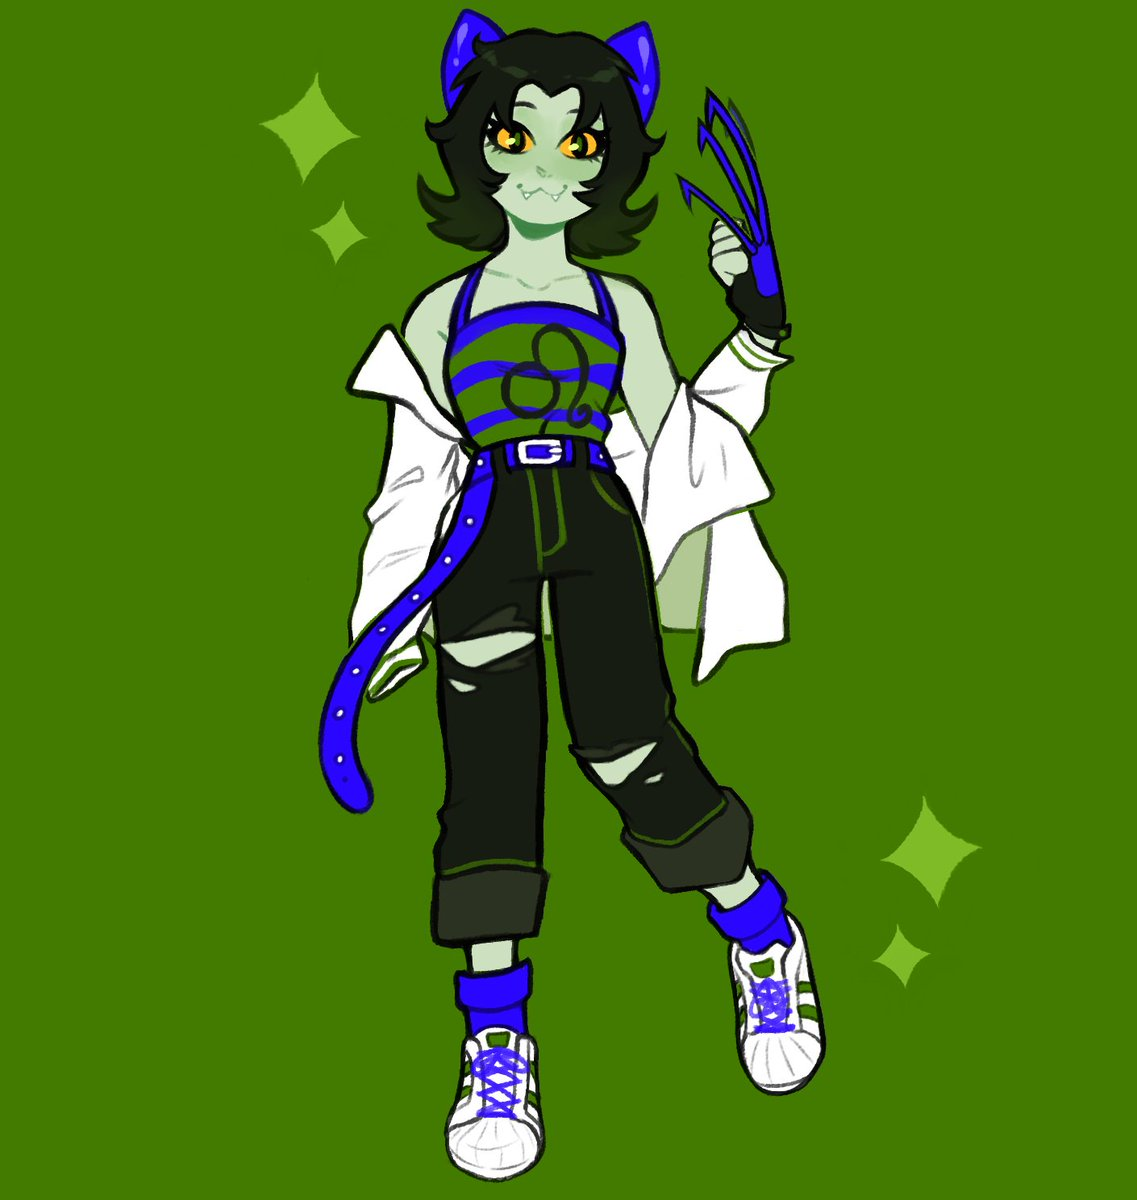 now is her time to shine   #homestuck #nepetaleijon #pesterquest #art #fanart #illustration <br>http://pic.twitter.com/dcAzi6zkHt